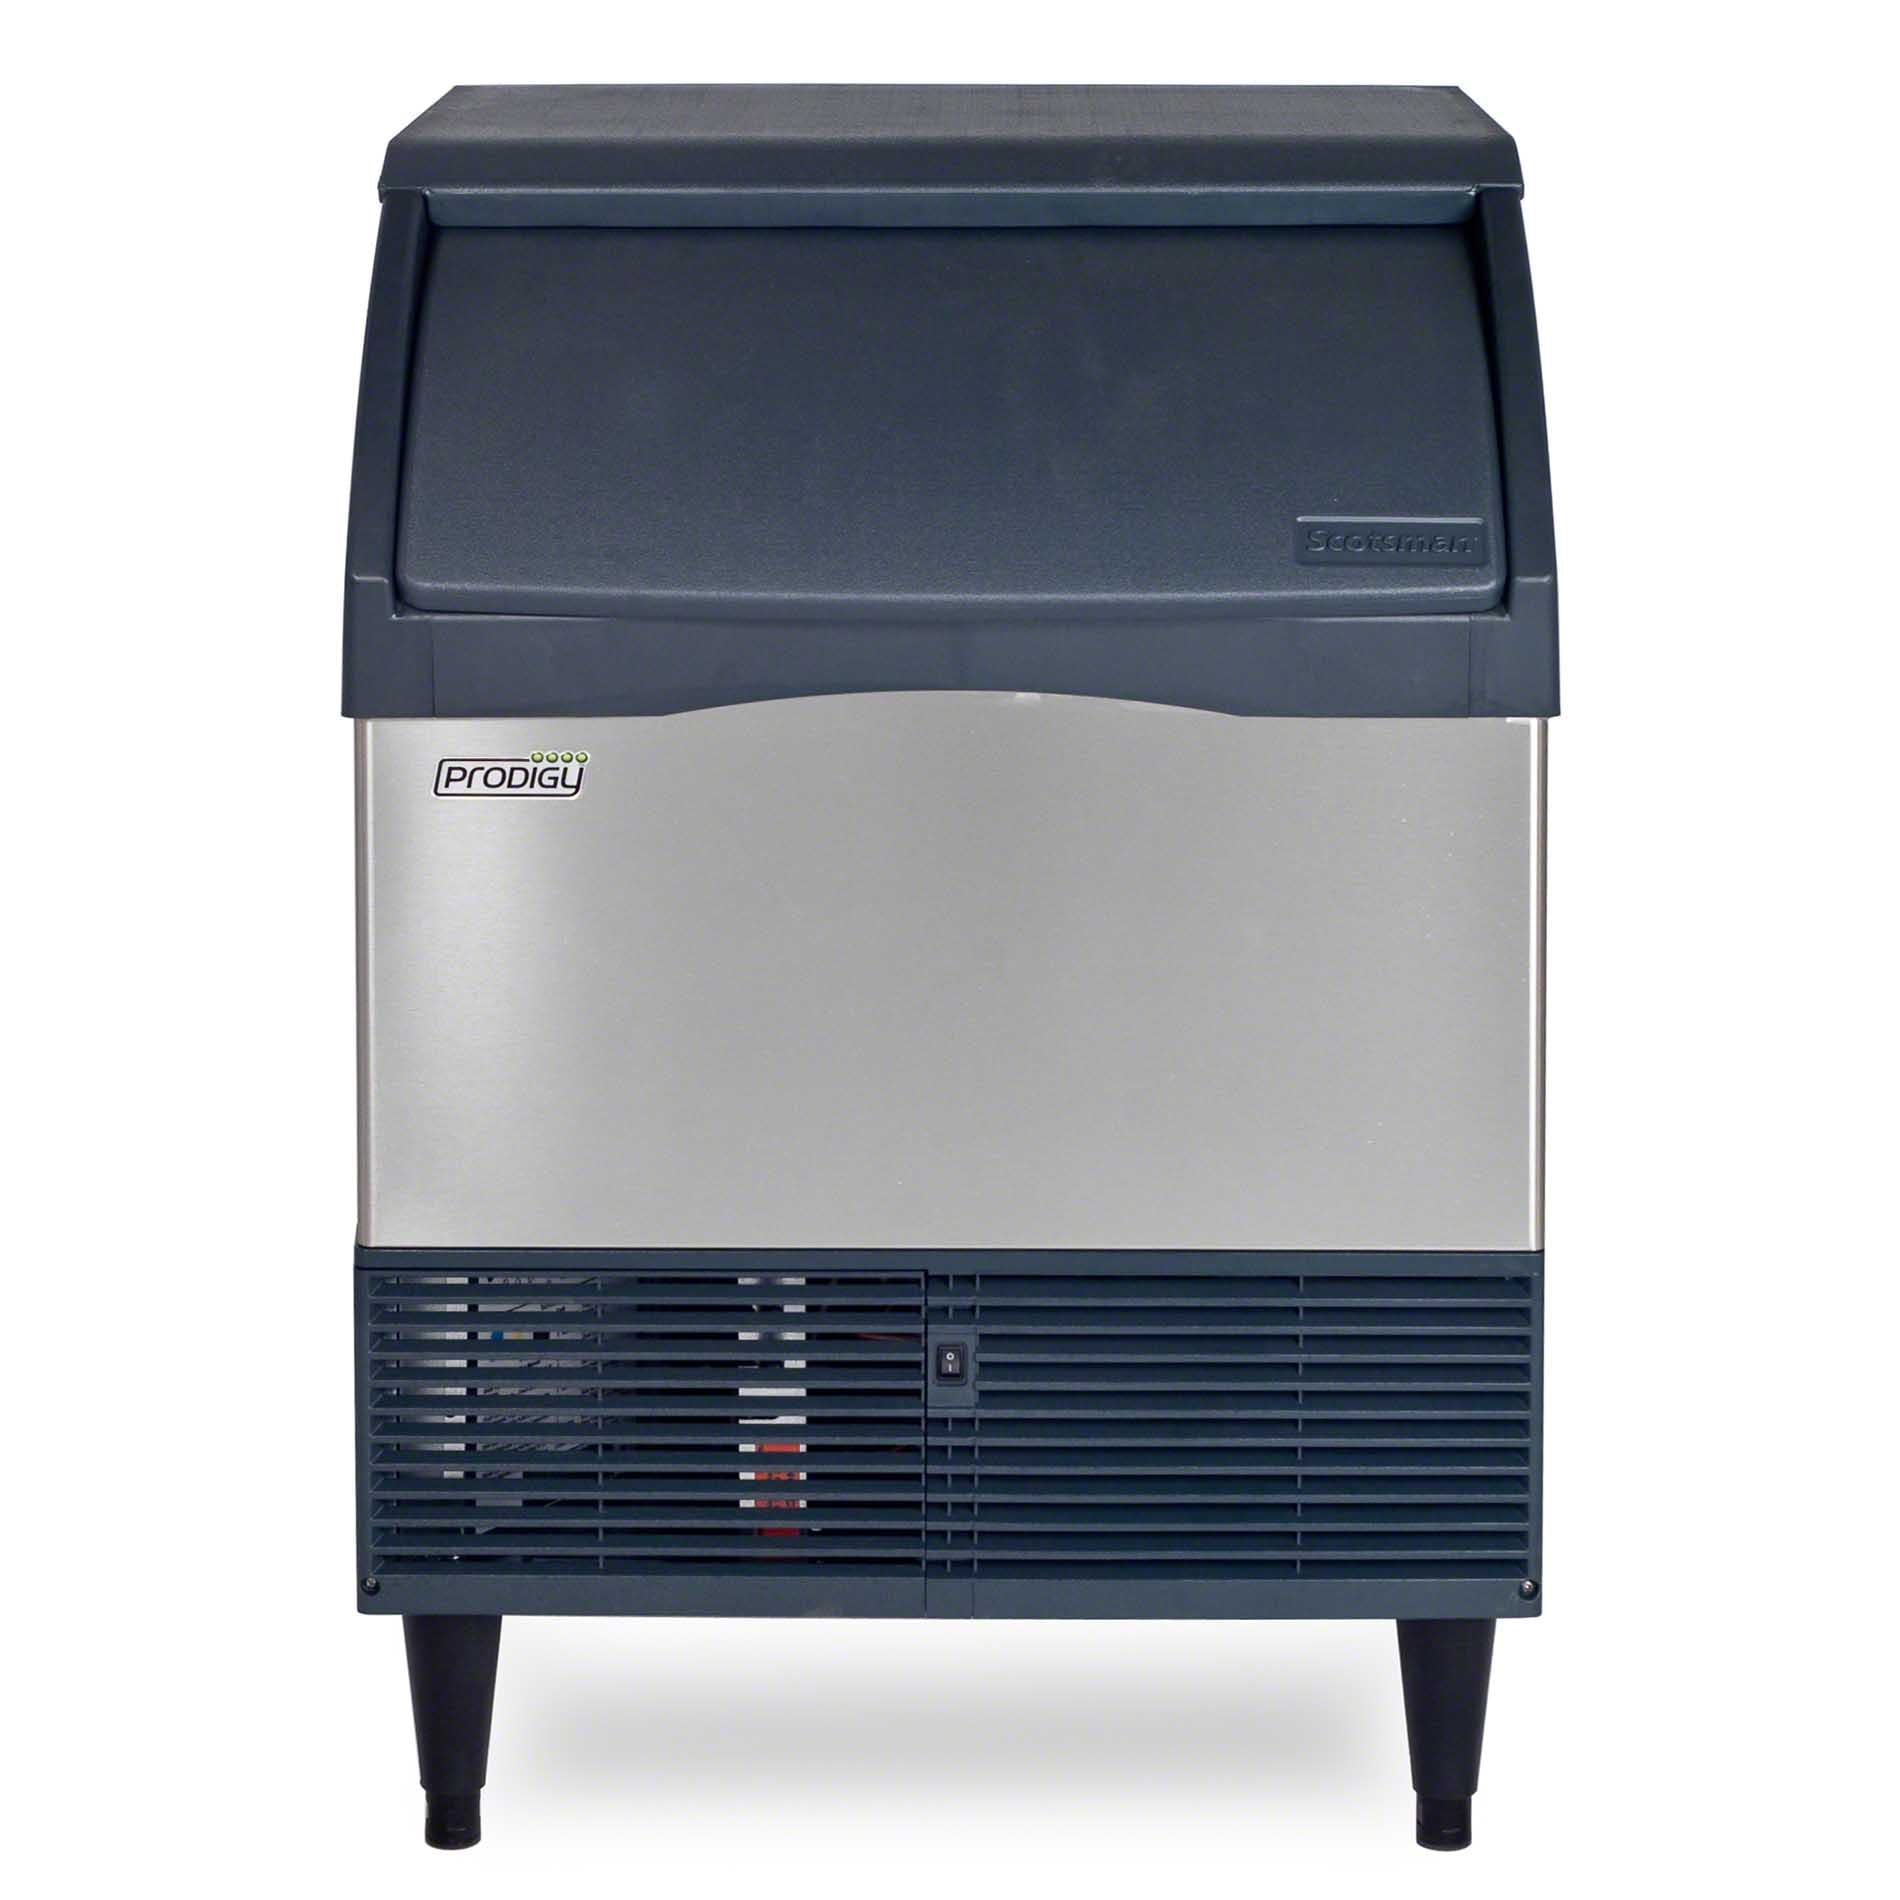 Scotsman - CU1526MW-1A 175 lb Self-Contained Cube Ice Machine - Prodigy Series Ice machine sold by Food Service Warehouse